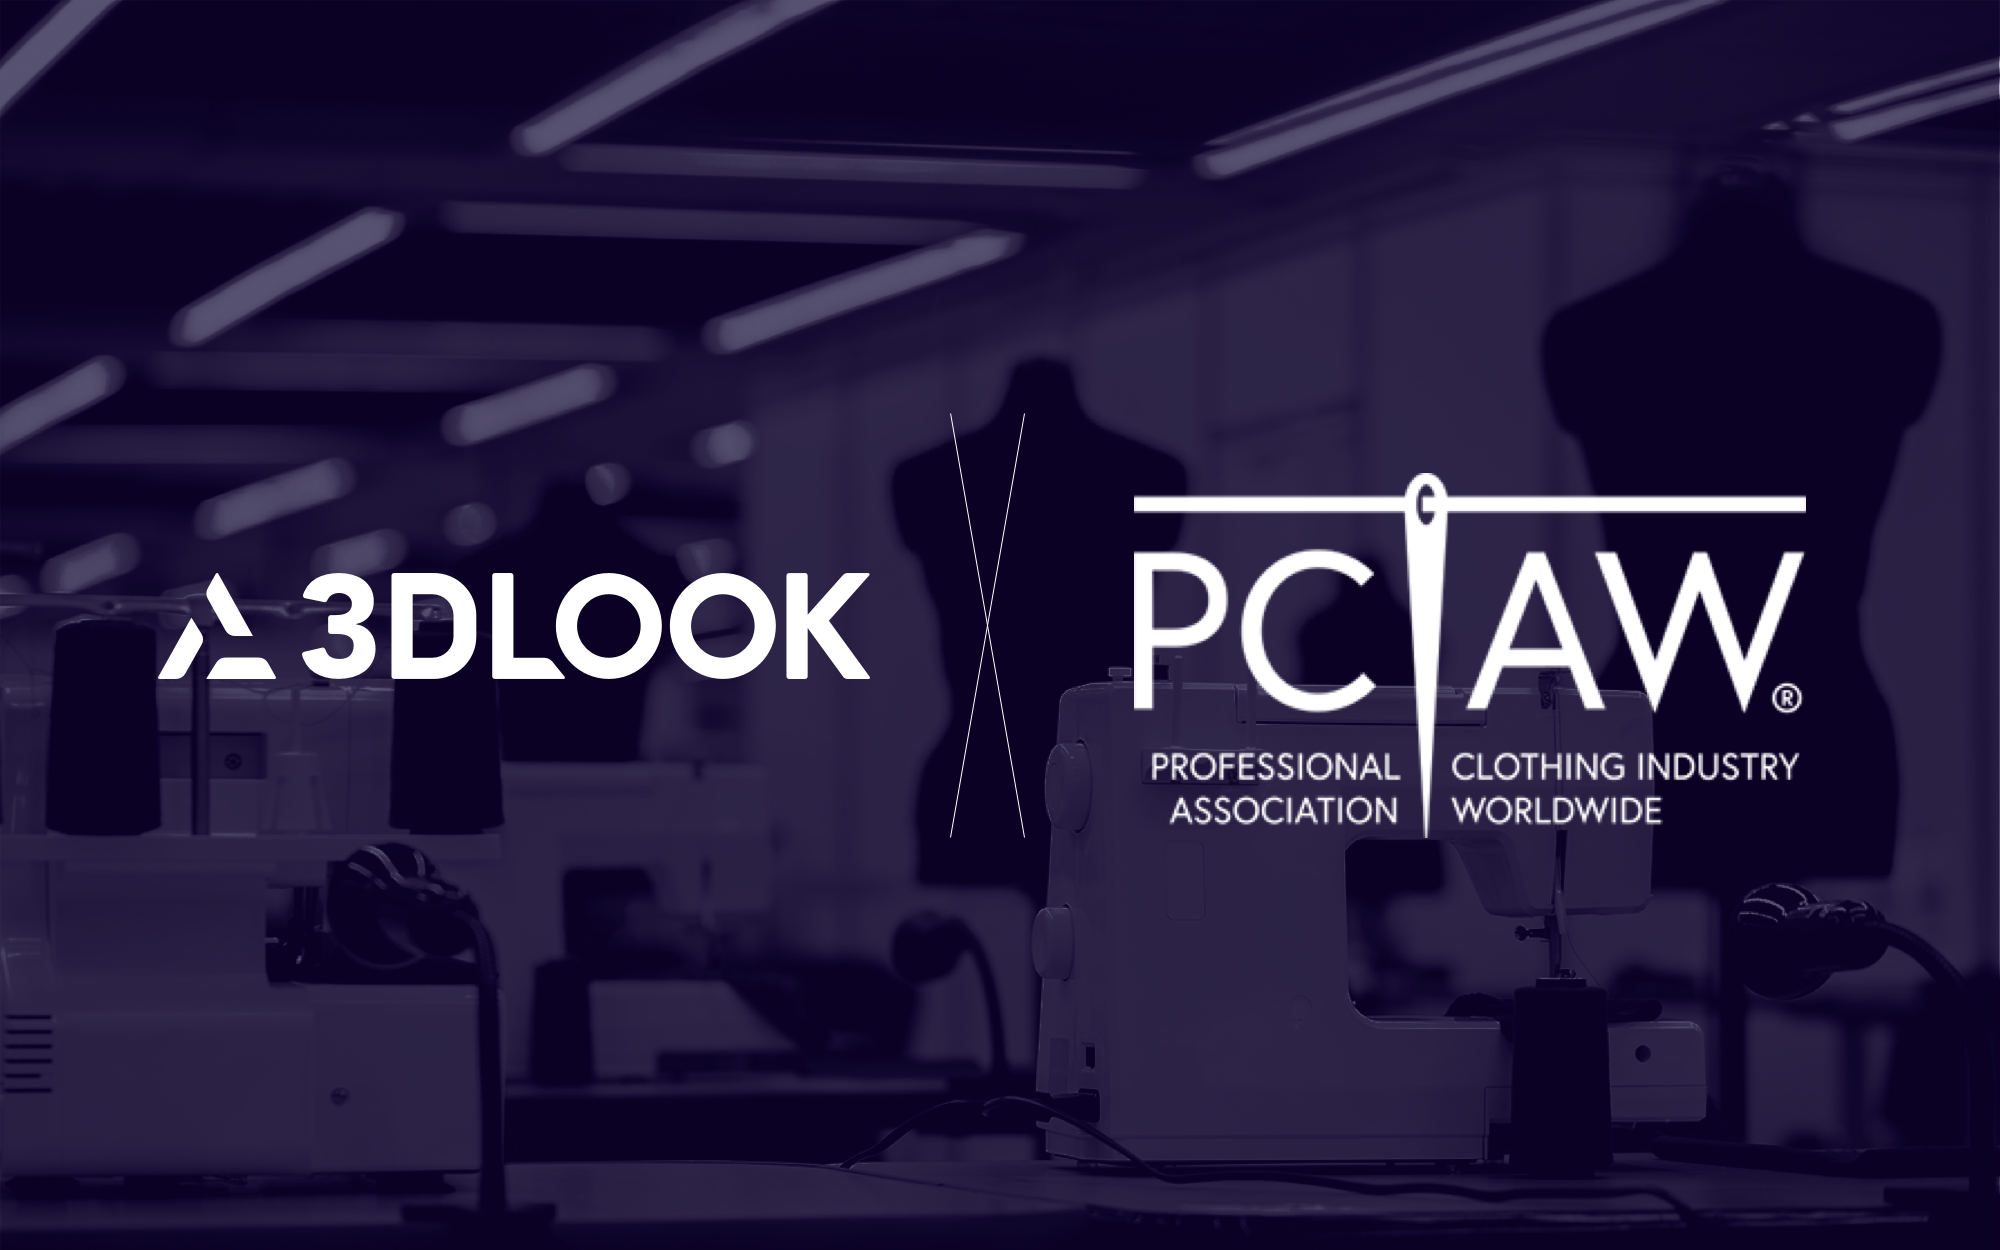 The CEO of PCIAW®, Yvette Ashby, was honoured to join as a guest speaker on 3DLOOK's 'Bringing Uniform Businesses into the Digital Age,' the innovative webinar on 24th April 2021.